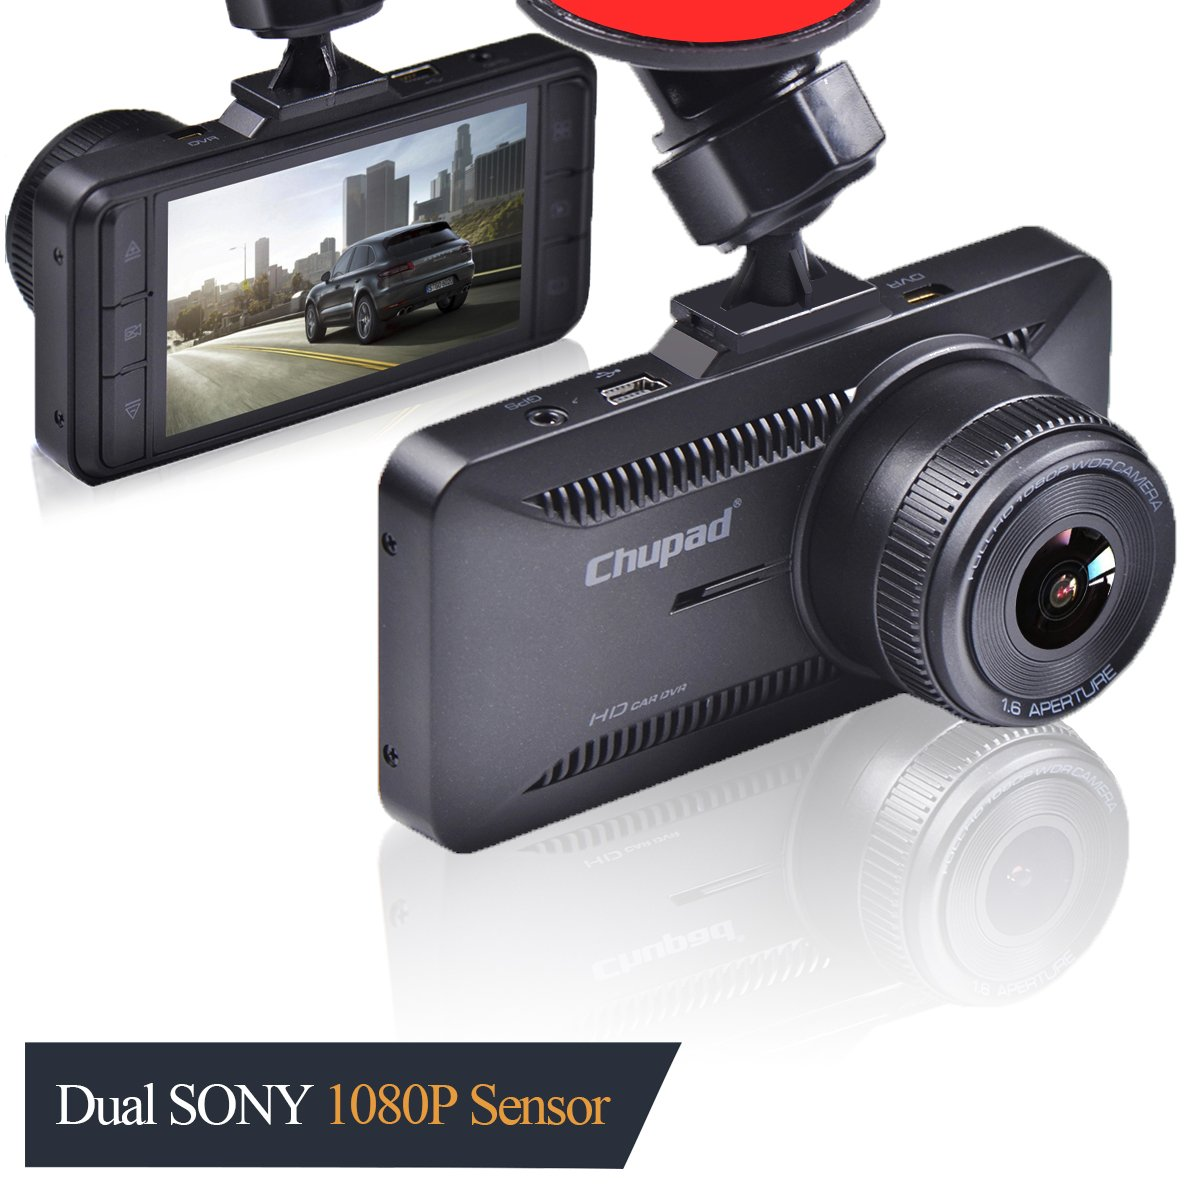 Chupad X16 Dash Cam 3.0 Inch LCD 1080P Front and Rear 1080P Camera Vehicle on Dash Video Recorder with Sony Video Sensor,GPS,G-Sensor,Night Vision,Parking Guard,Loop Recording